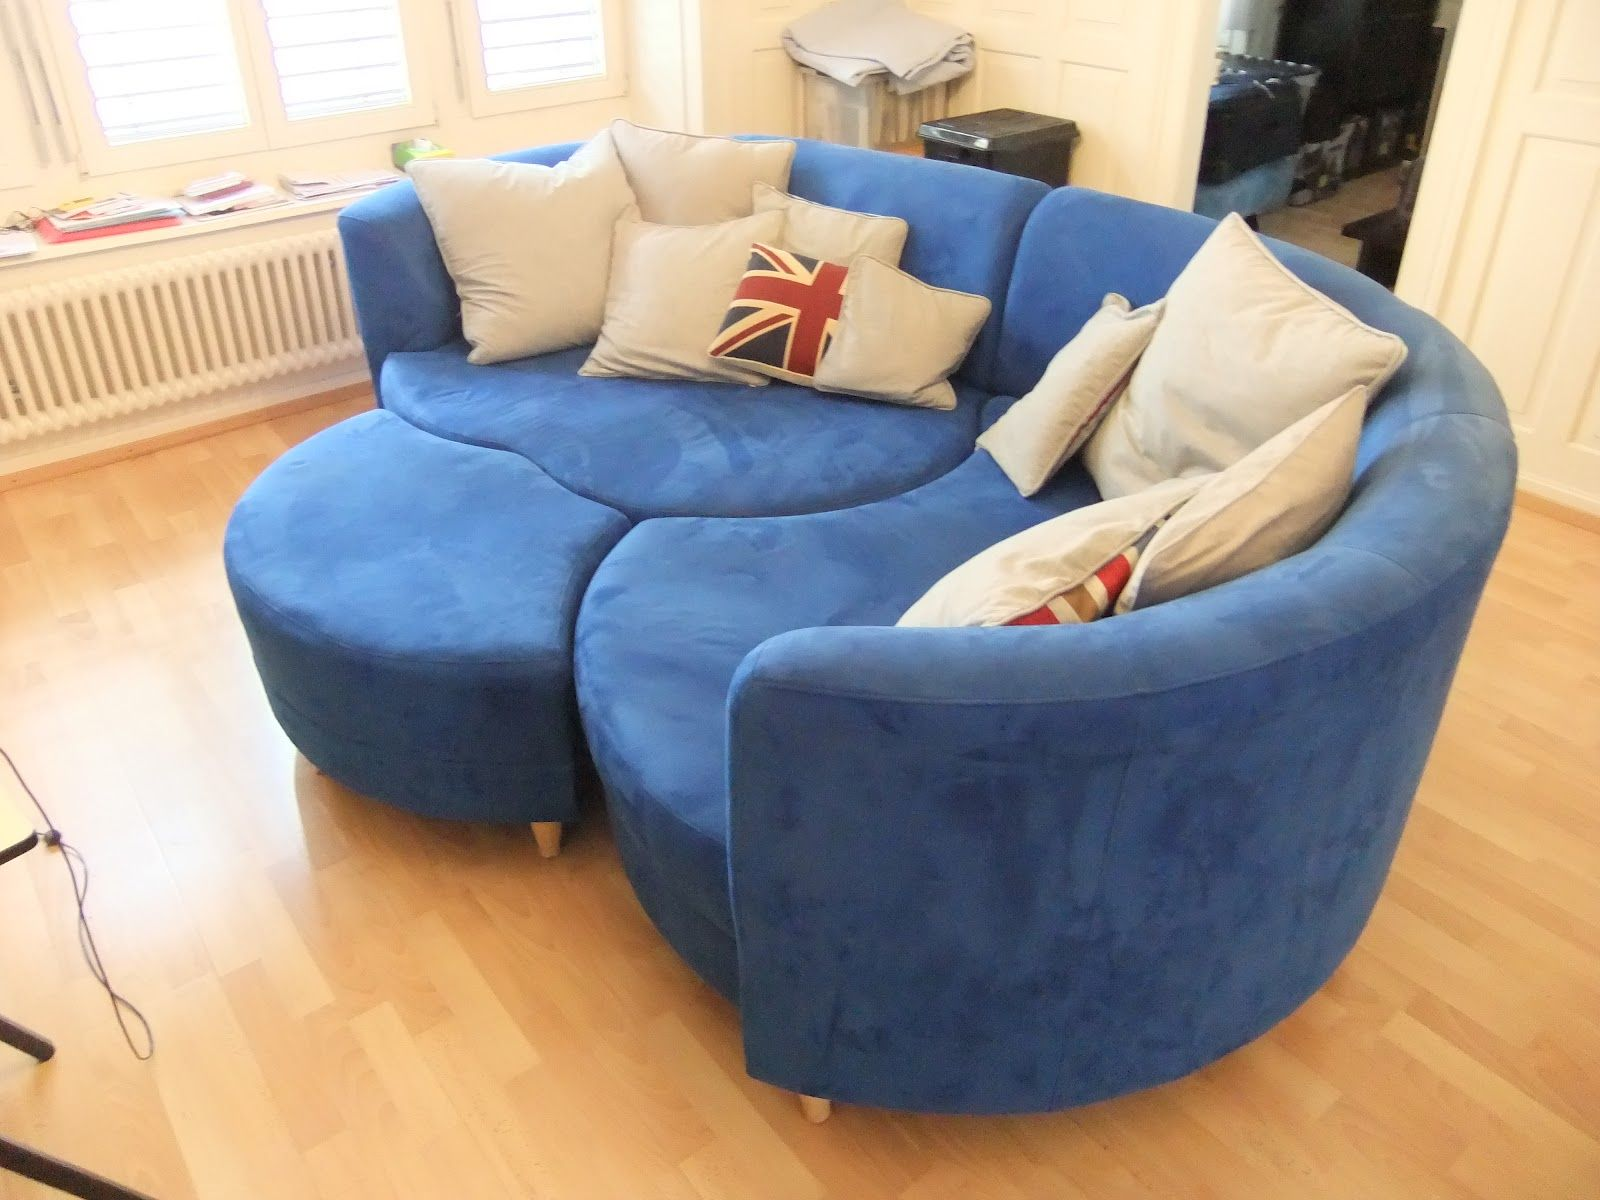 Enchanting Curved Blue Sofa Amazing Curved Blue Sofa 34 For Your Contemporary Sofa Inspiration With Curved Blue Sof Couches For Sale Round Couch Cool Couches